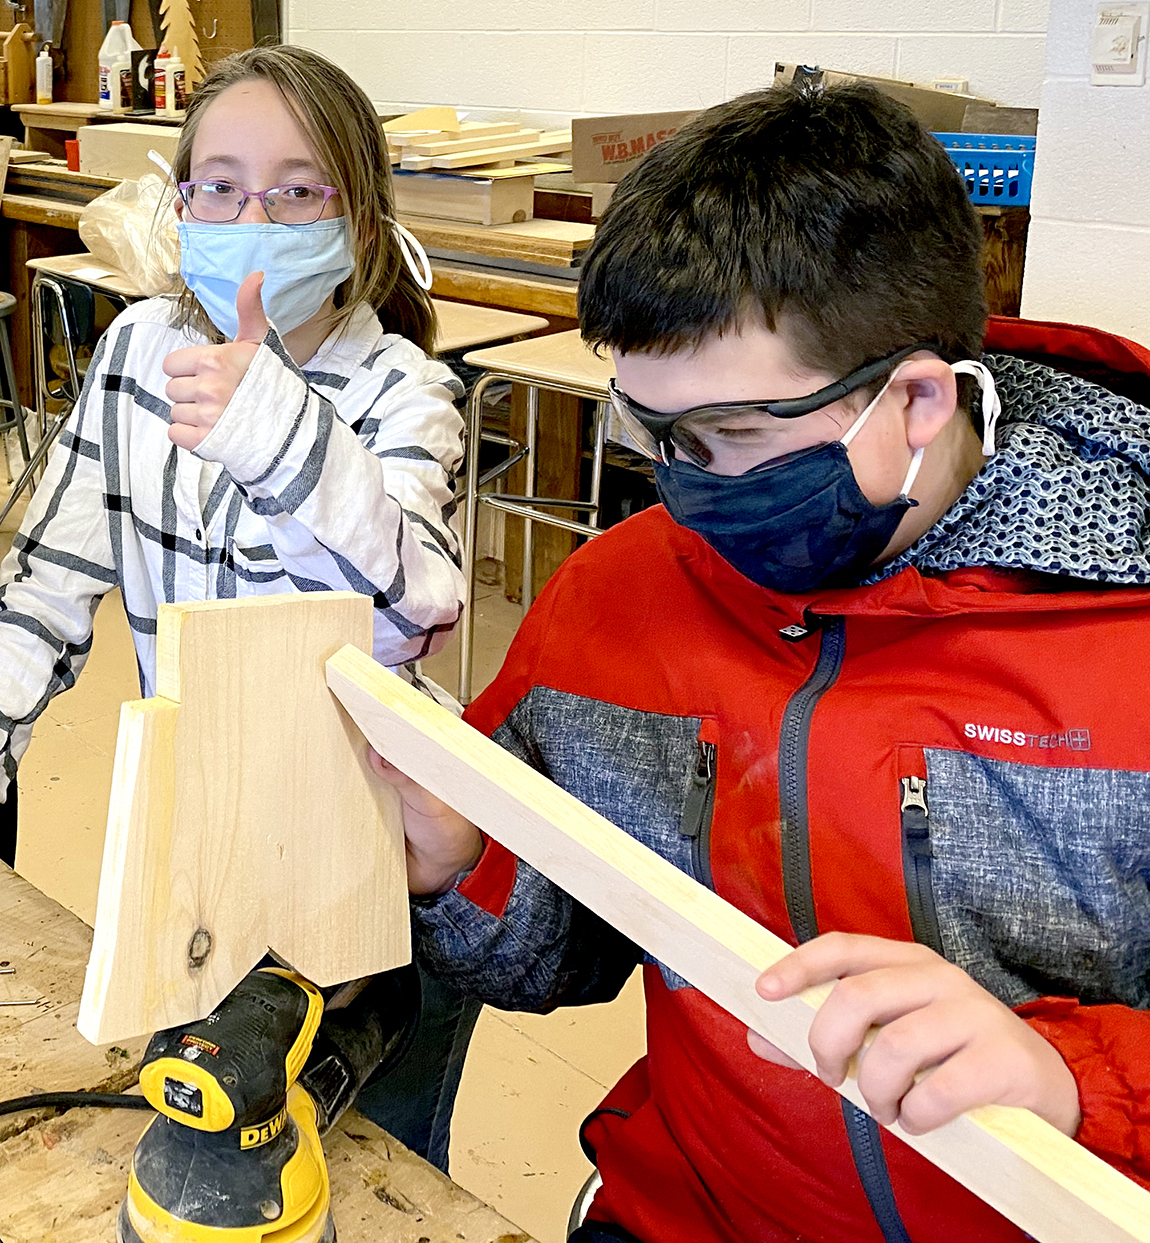 Students building project (2/2021)